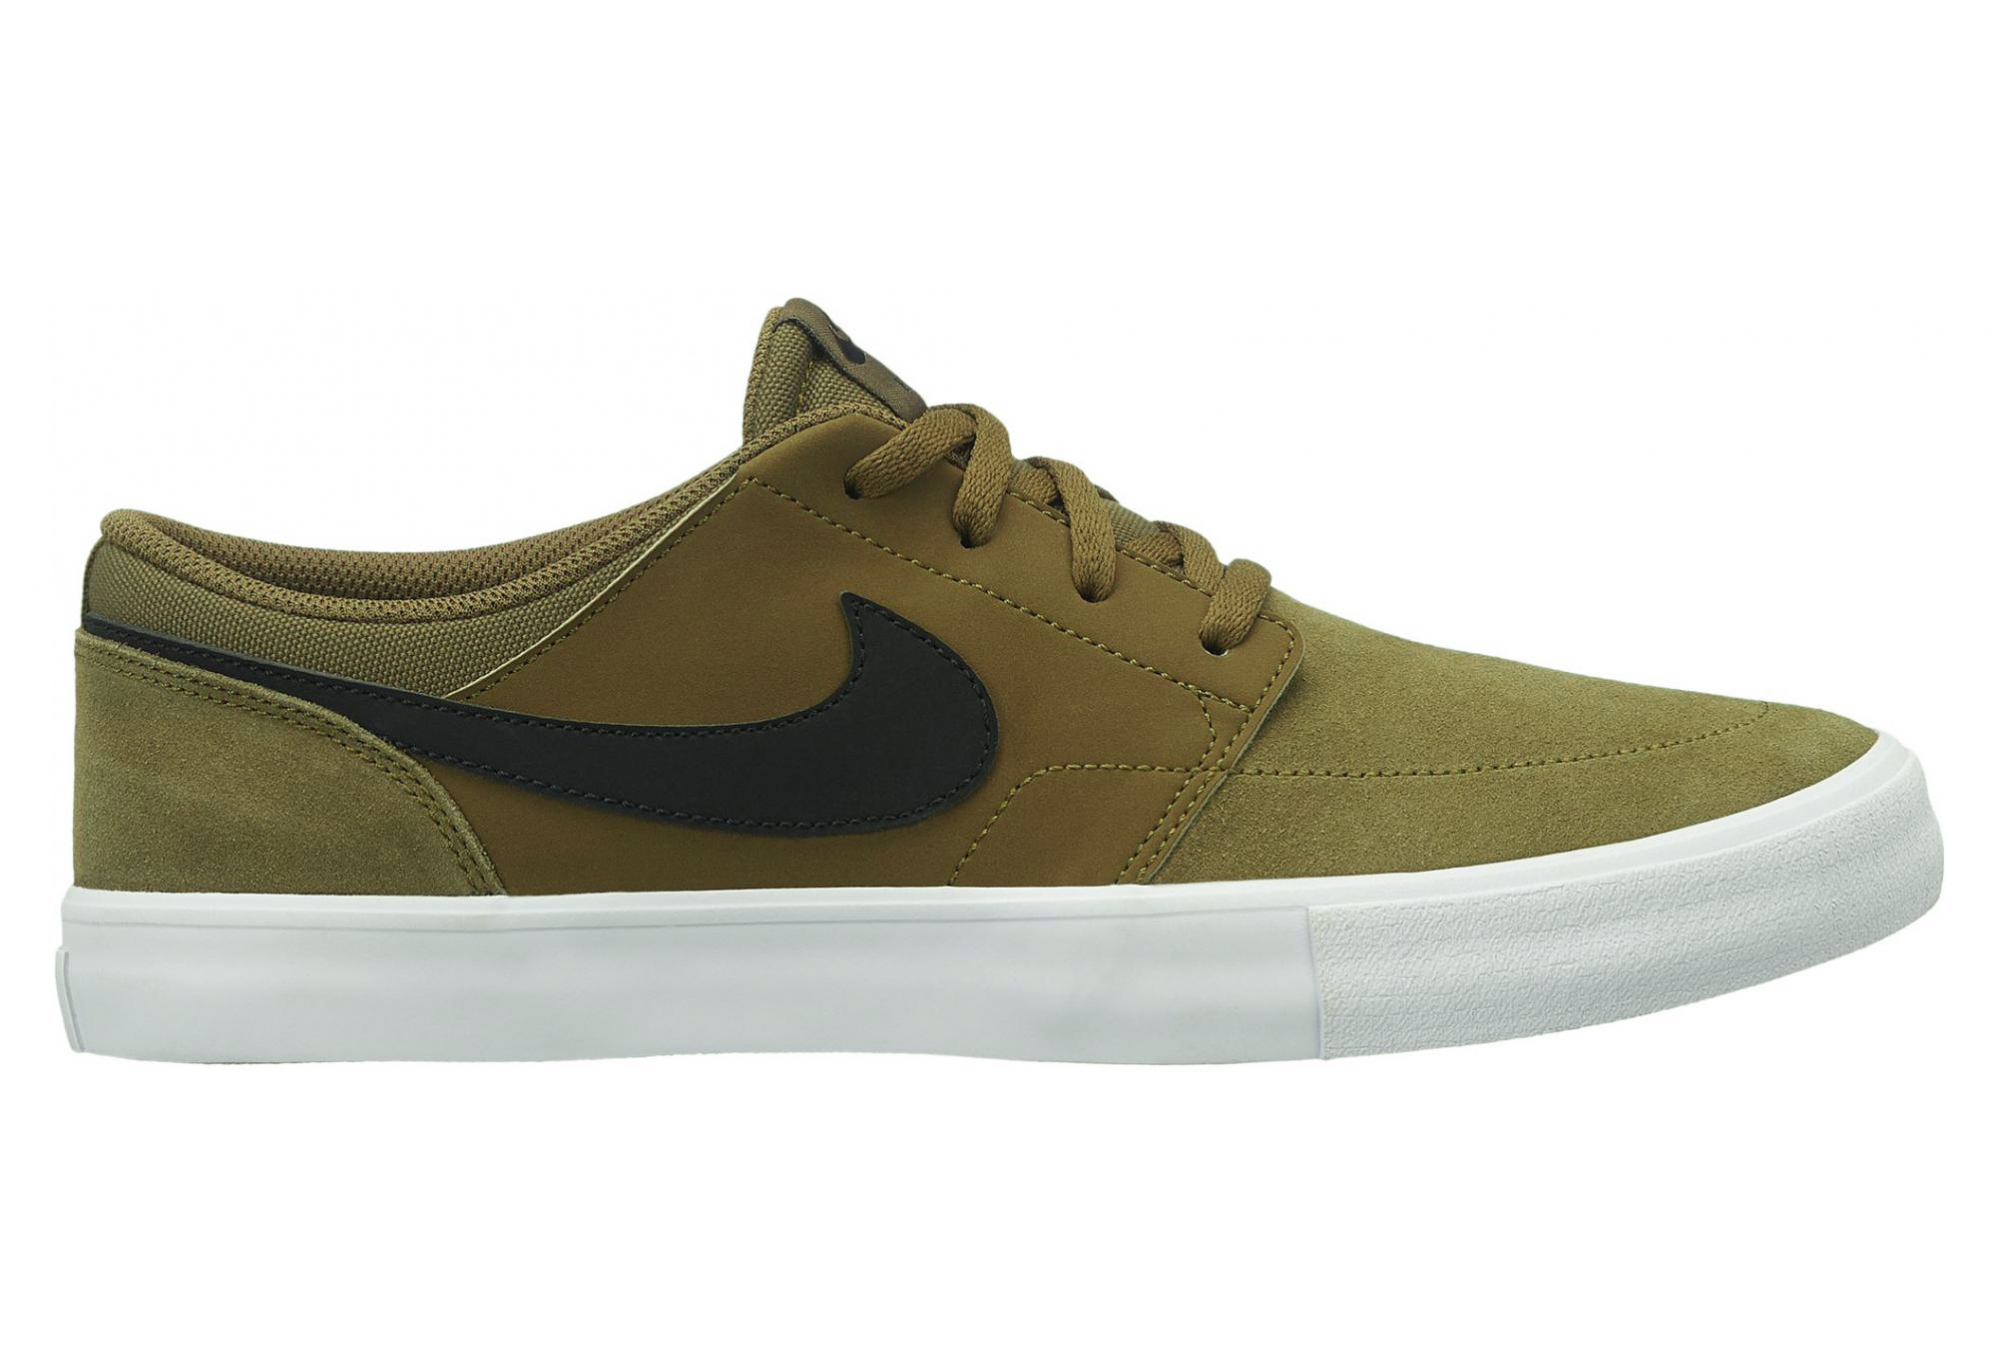 03f3a2946f Nike SB Solarsoft Portmore II Shoes Olive / Black | Alltricks.com